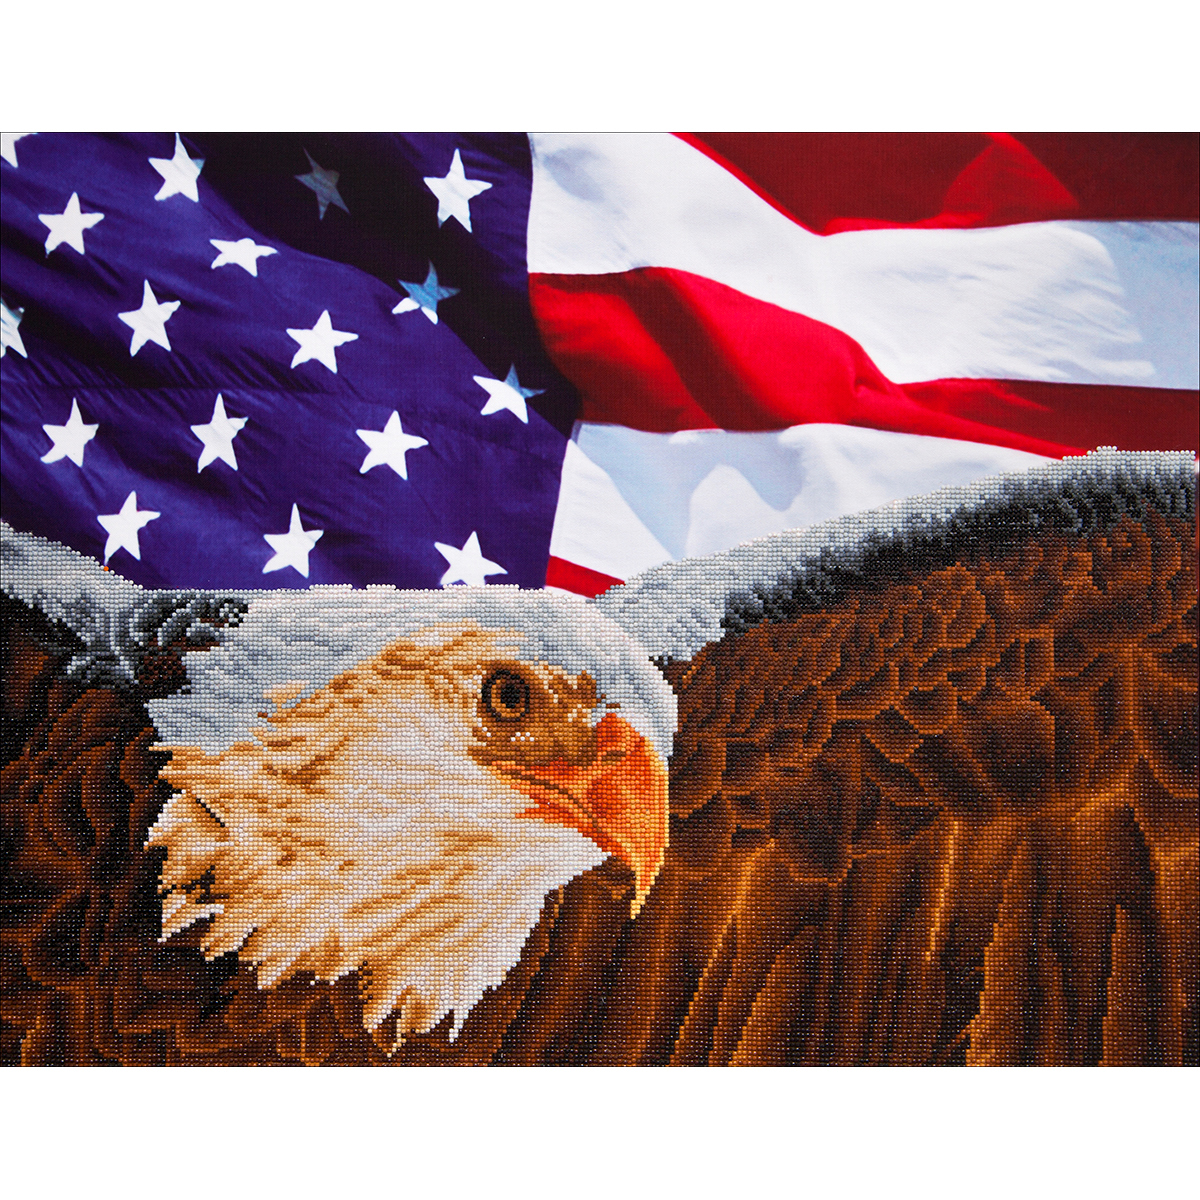 Diamond Dotz Diamond Embroidery Facet Art Kit 25.5X35.5-Bald Eagle & Flag